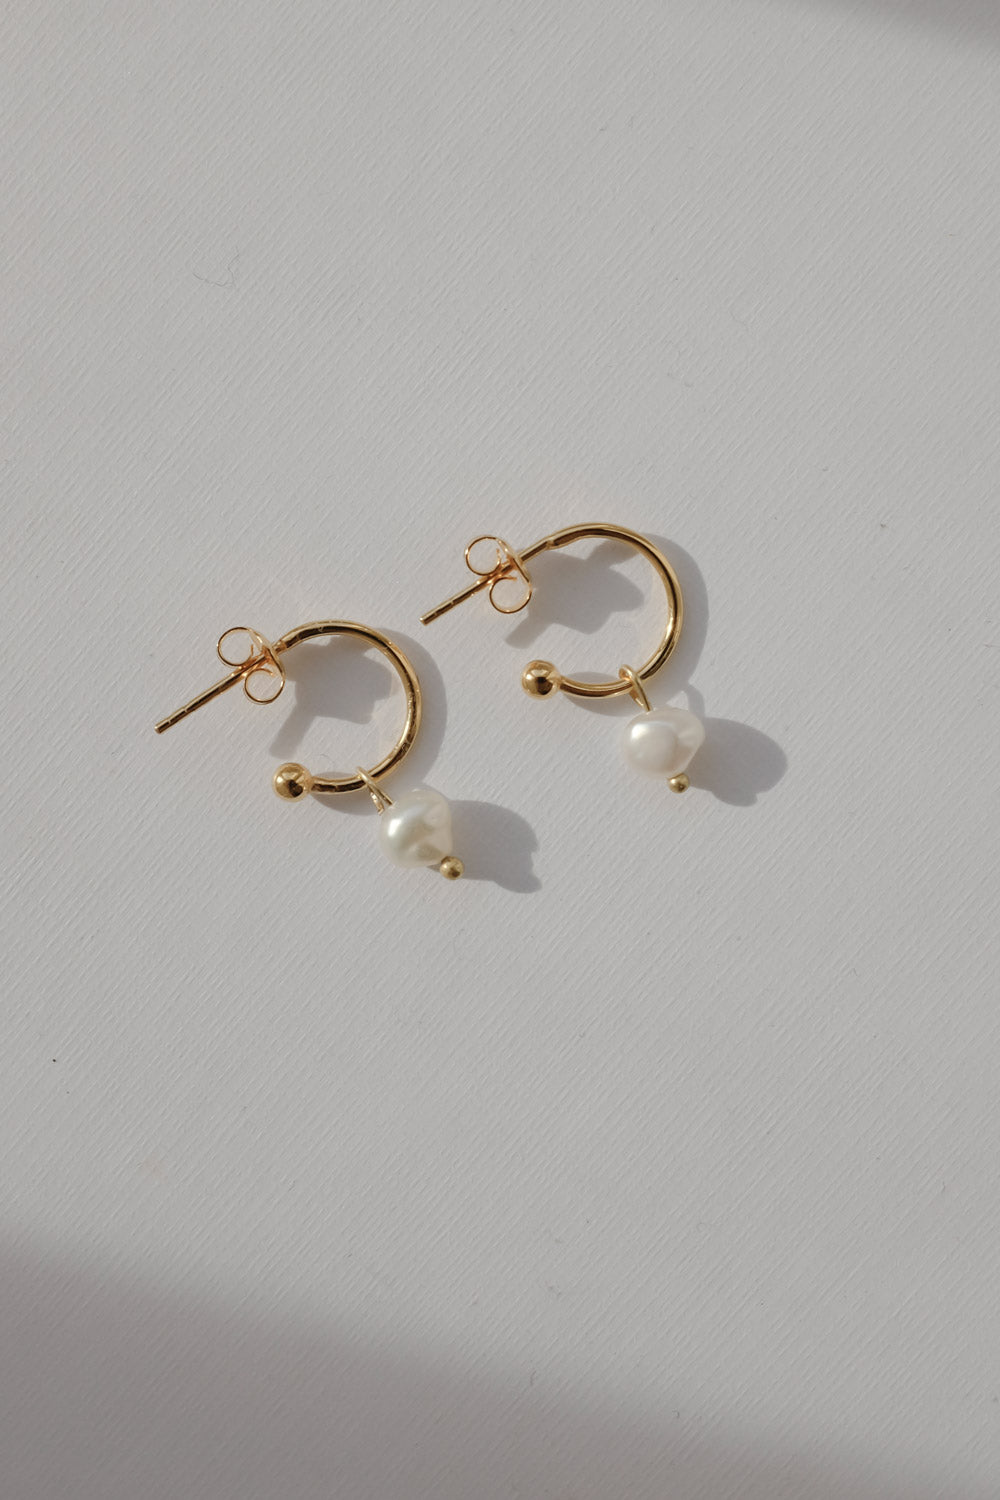 0017_VINTAGE SMALL GOLD HOOPS WITH PEARL